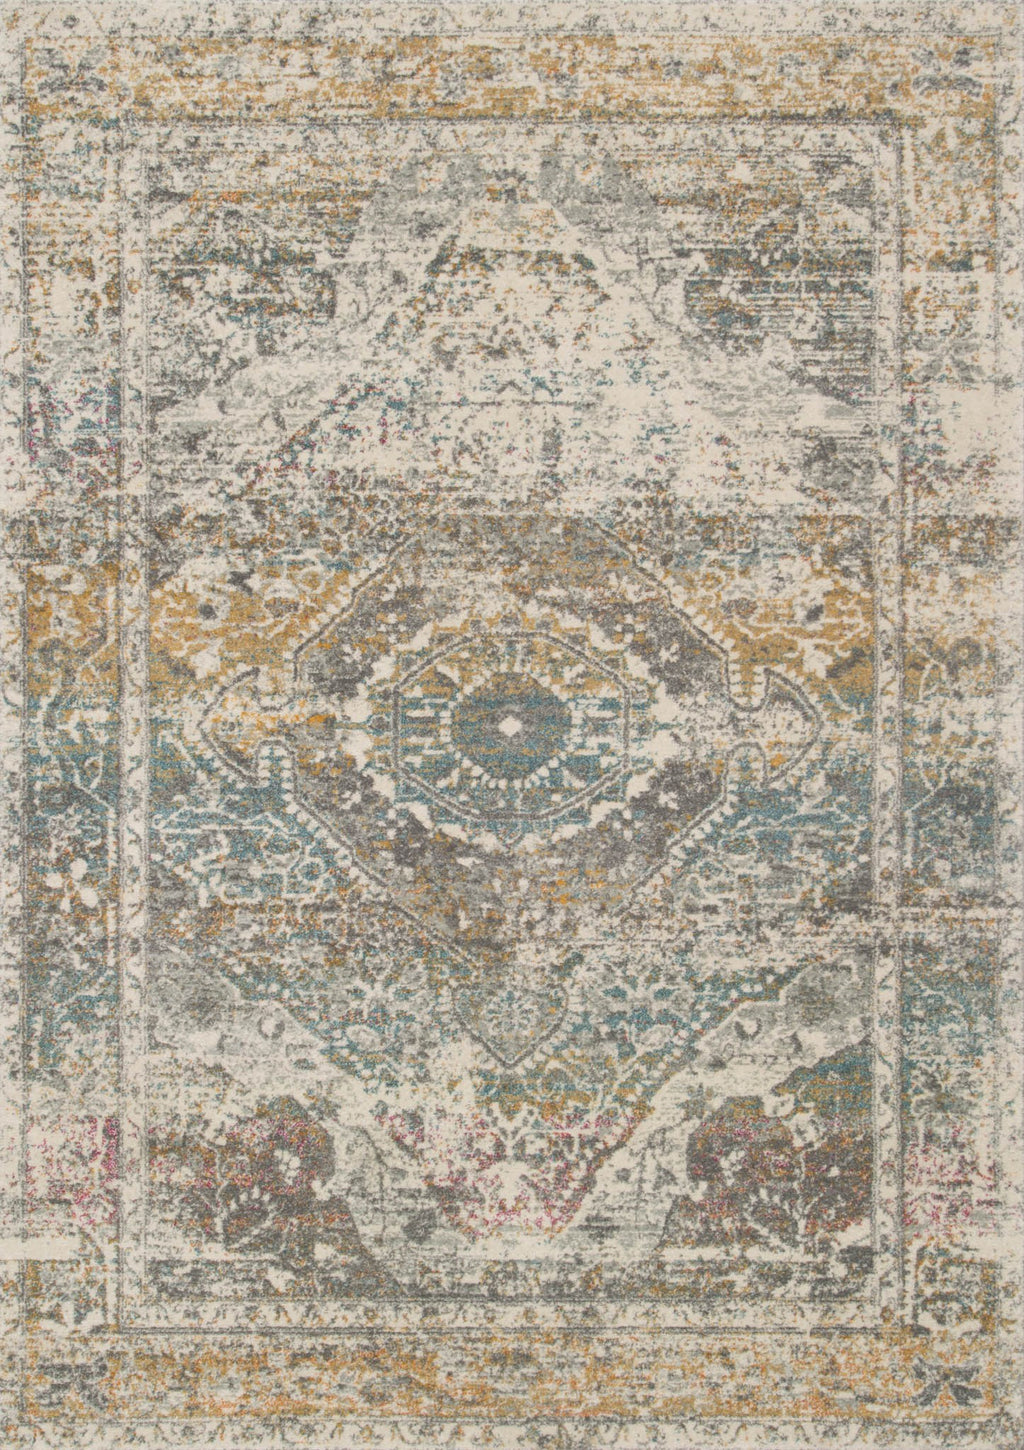 ZEHLA Collection Rug  in  STONE / STONE Gray Runner Power-Loomed Polypropylene